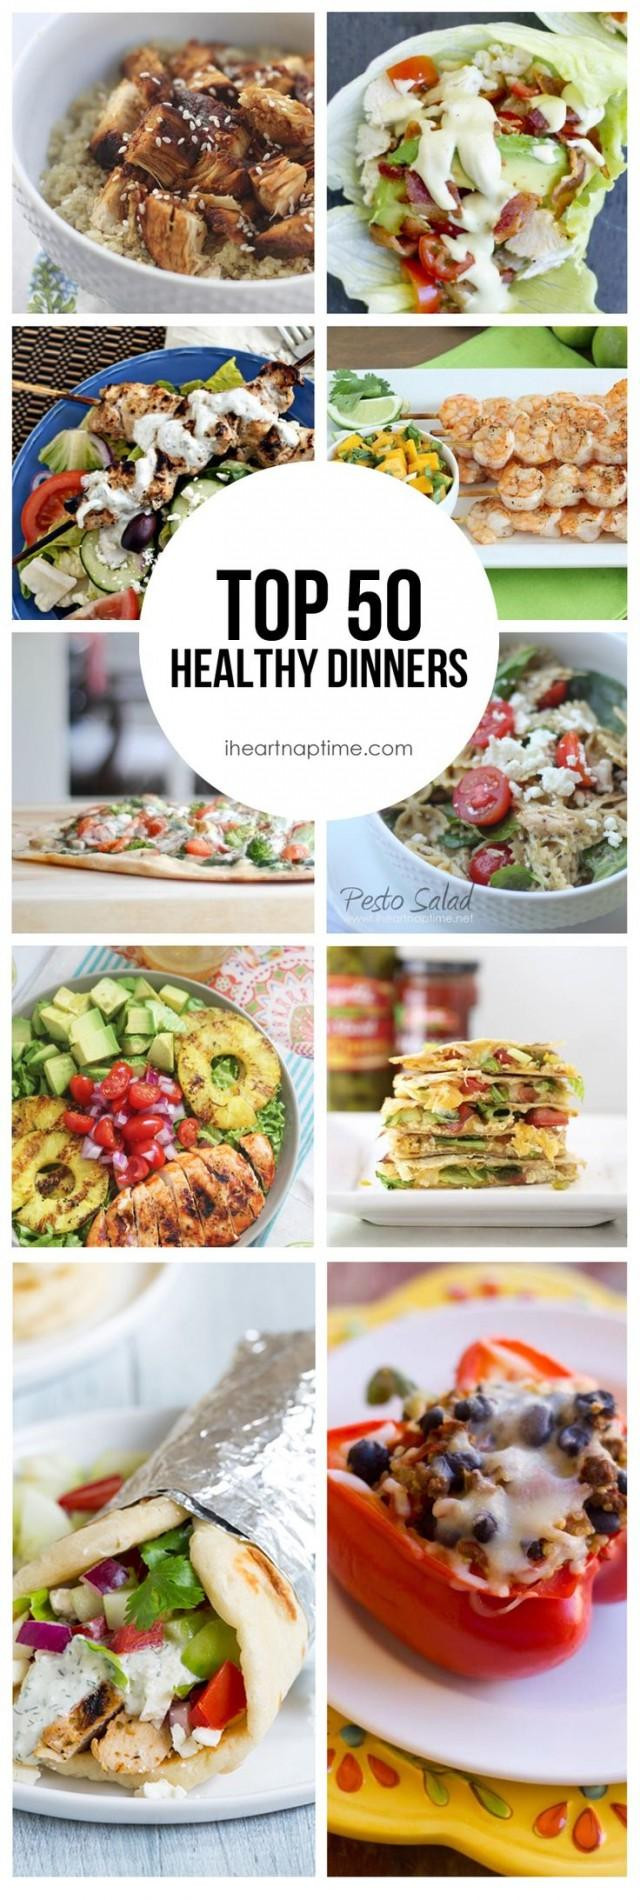 Great Healthy Dinners  Top 50 Healthy Dinners